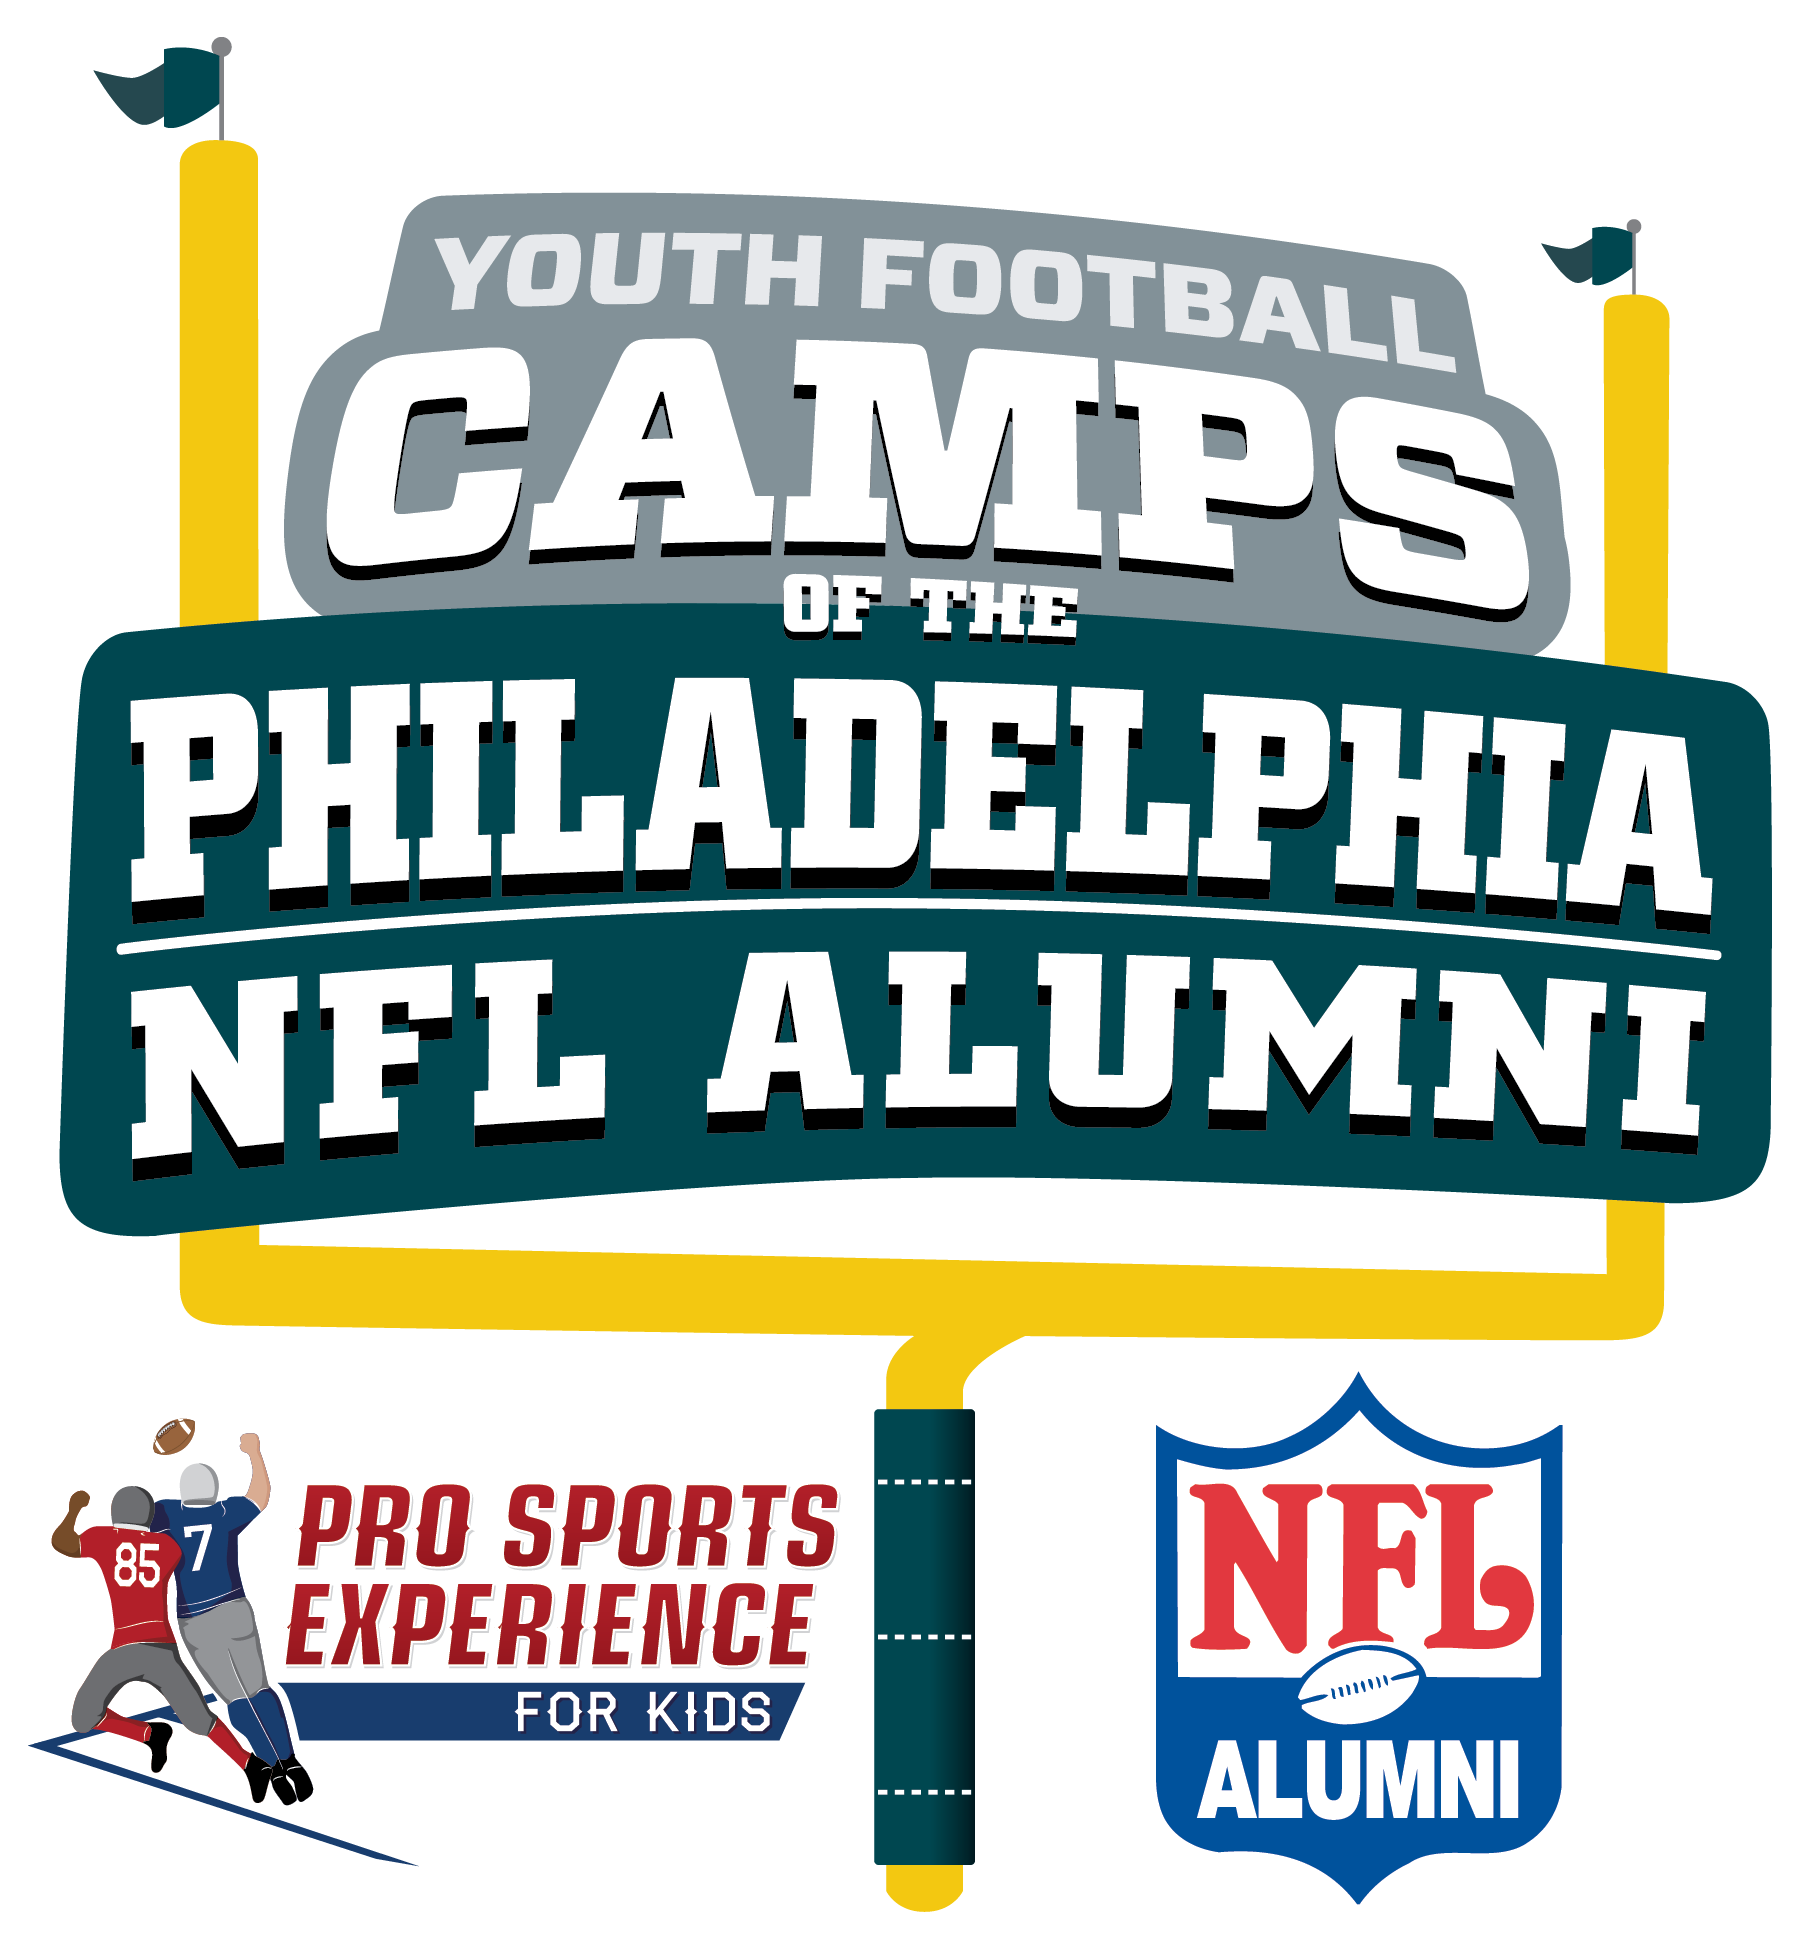 Philadelphia NFL Alumni Hero Youth Football Camps - Wilmington